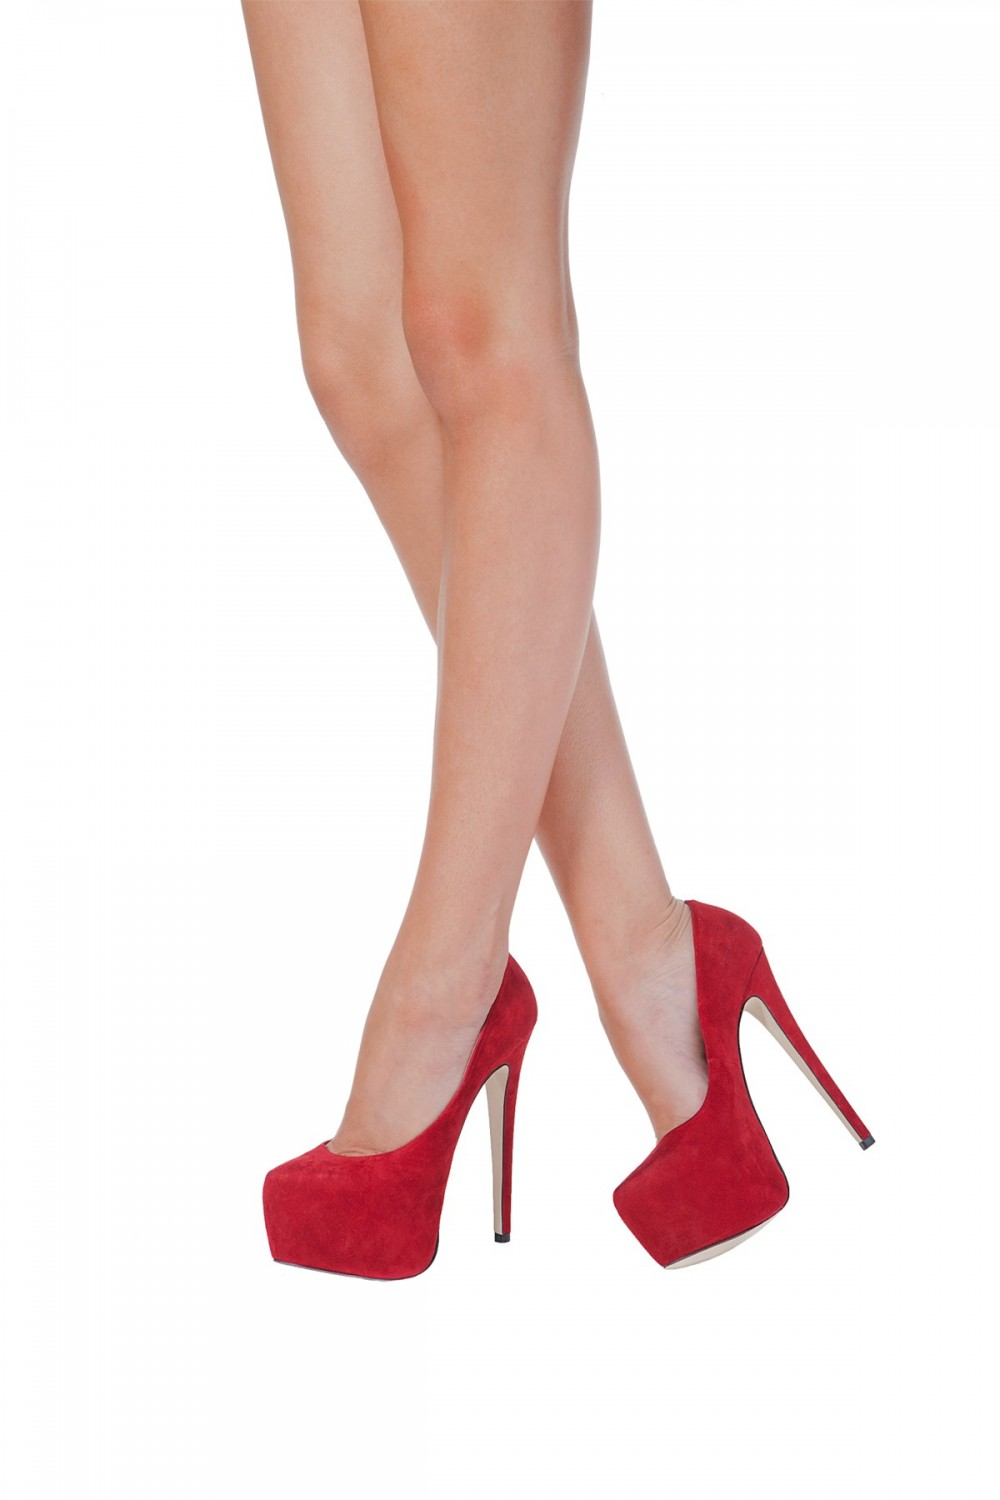 Janiko High-Heels Classics Pumps Diva Cherry JN7003